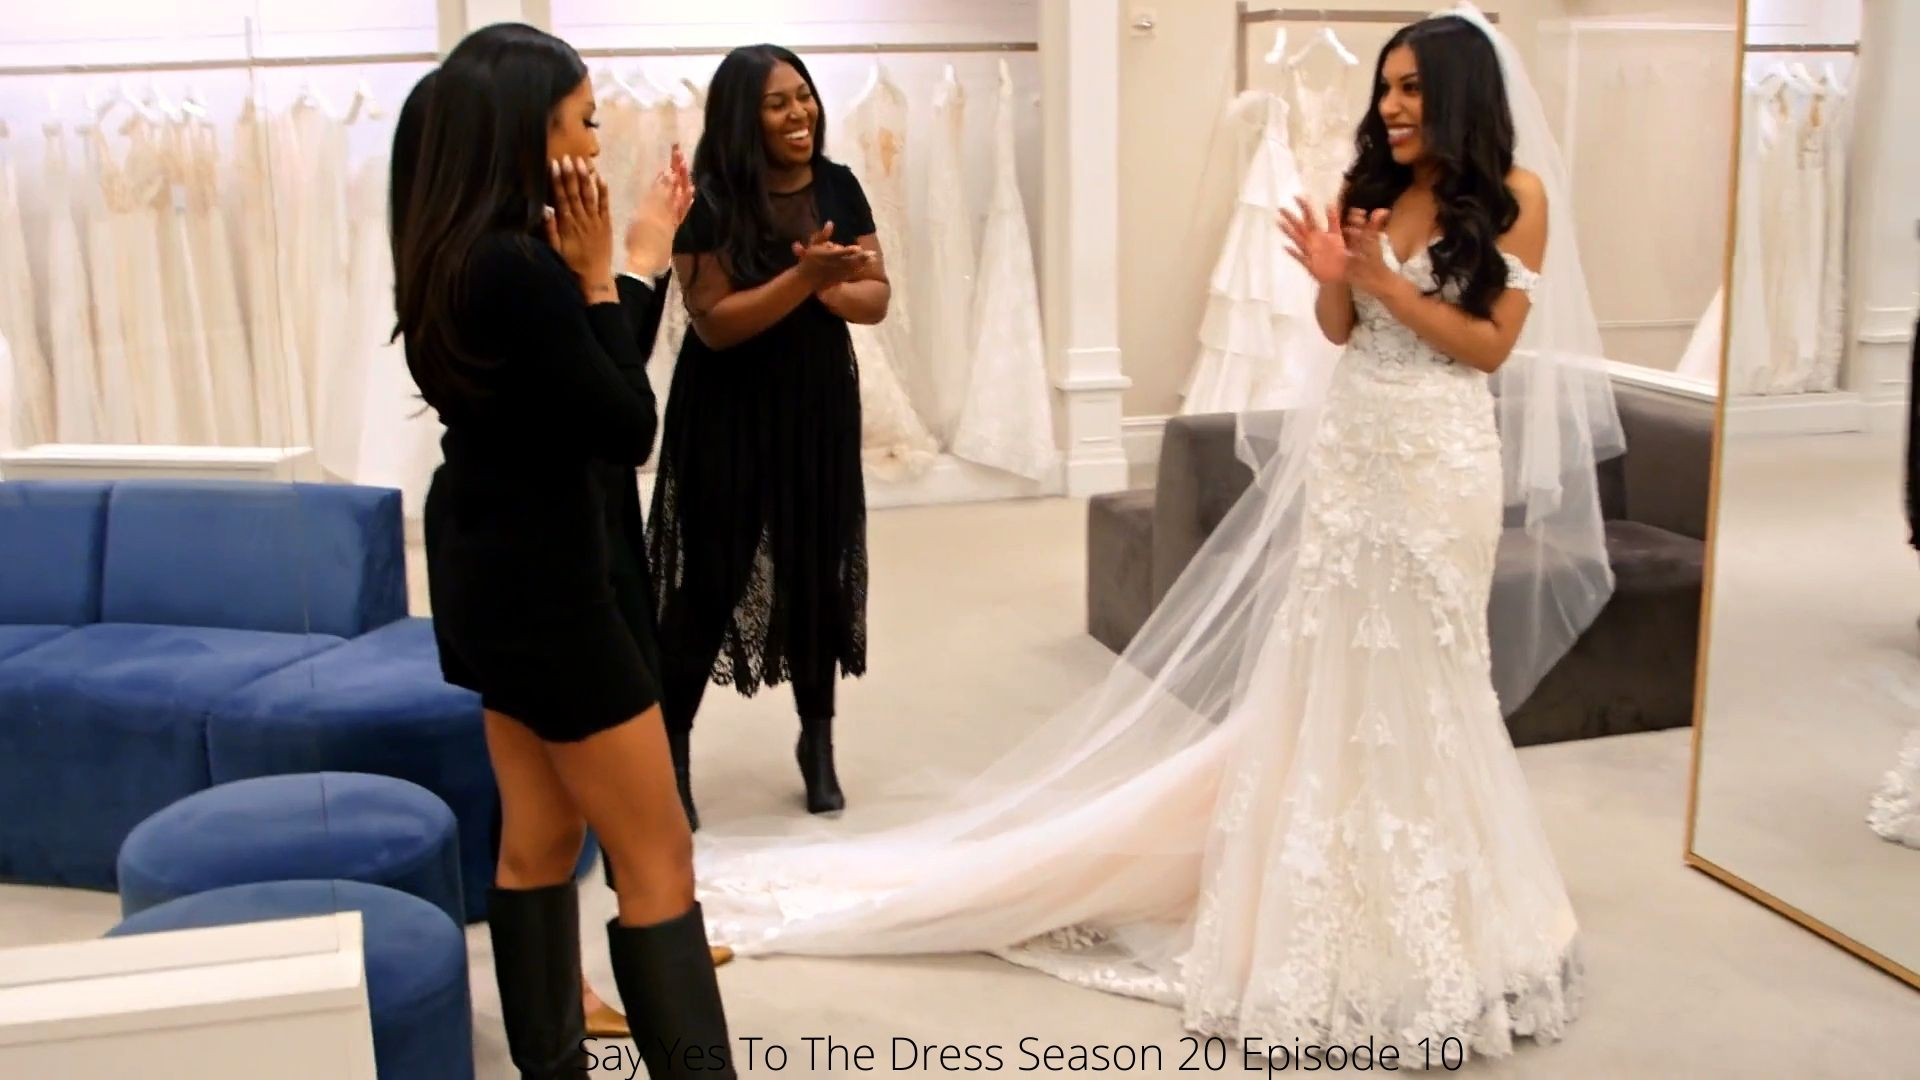 Say Yes To The Dress Season 20 Episode 11